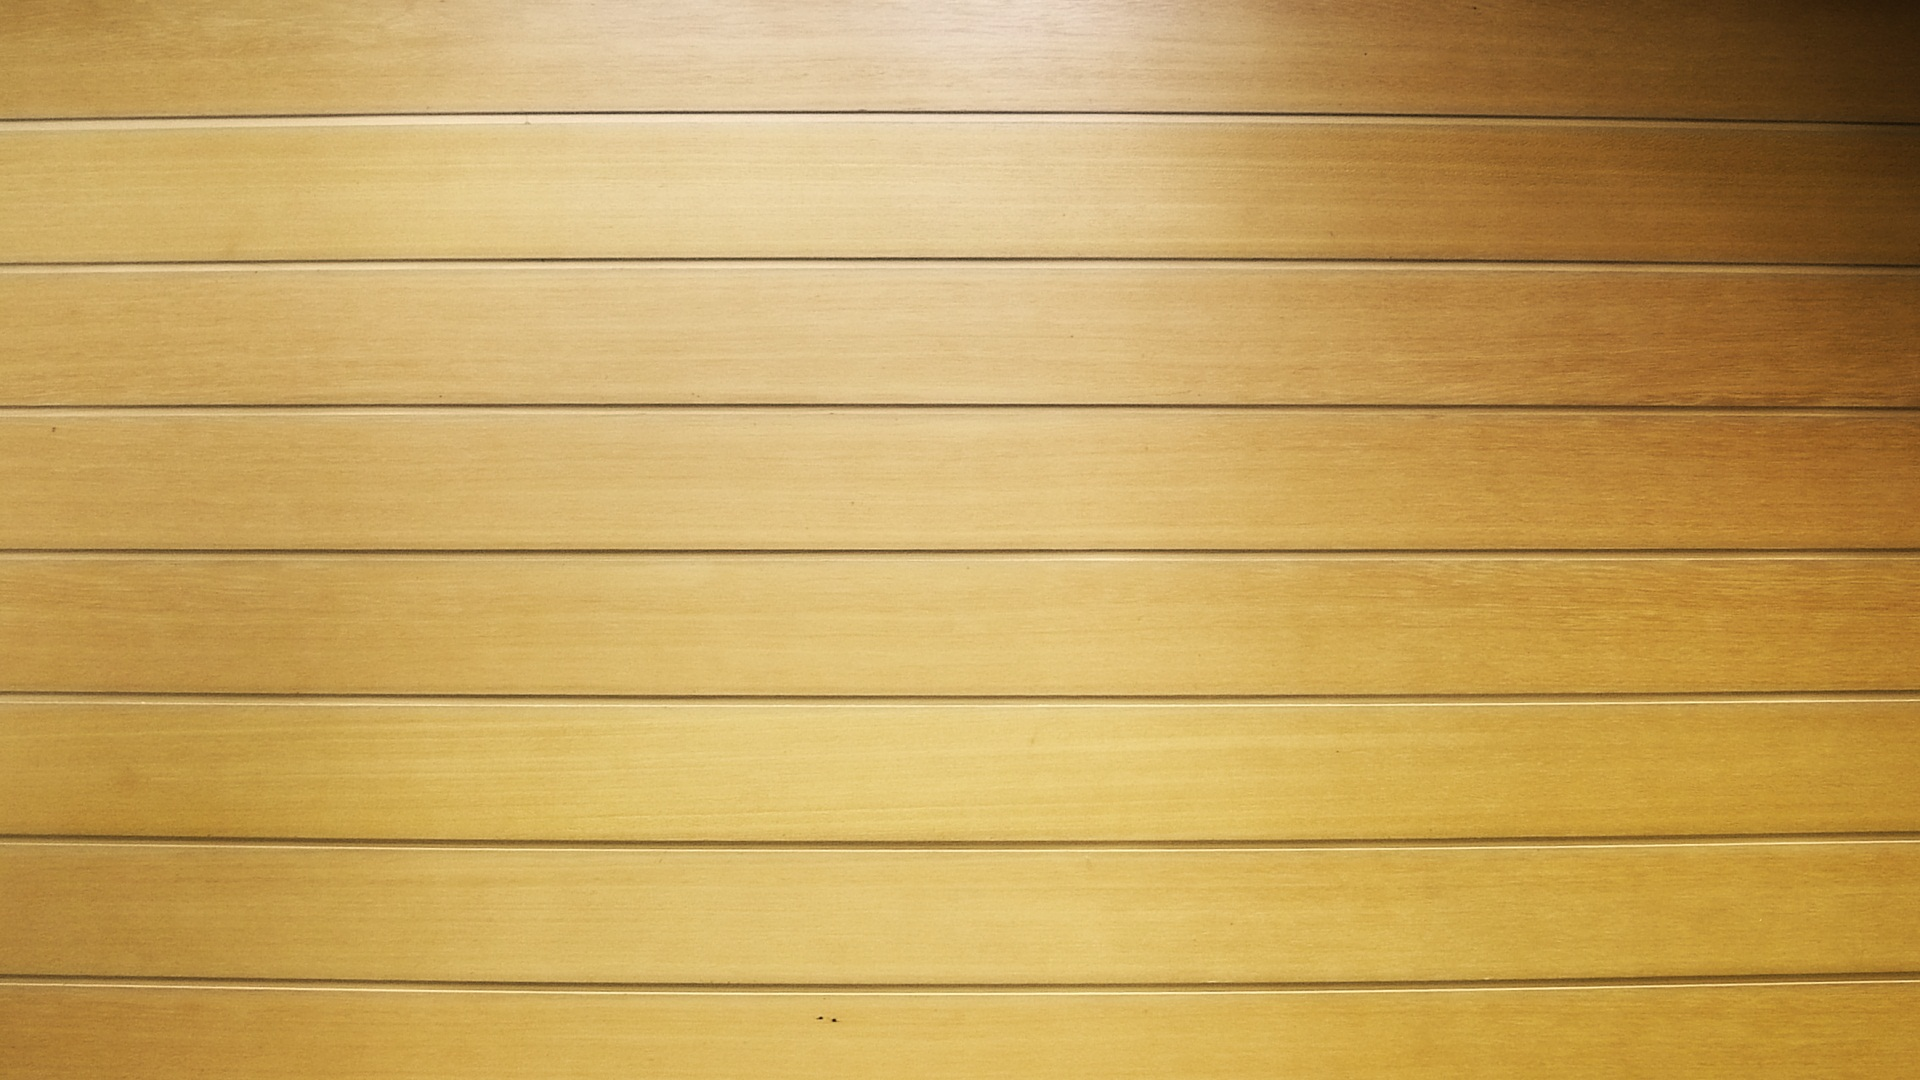 wallpaper modern pictures gallery latest texture wood wooden 1920x1080